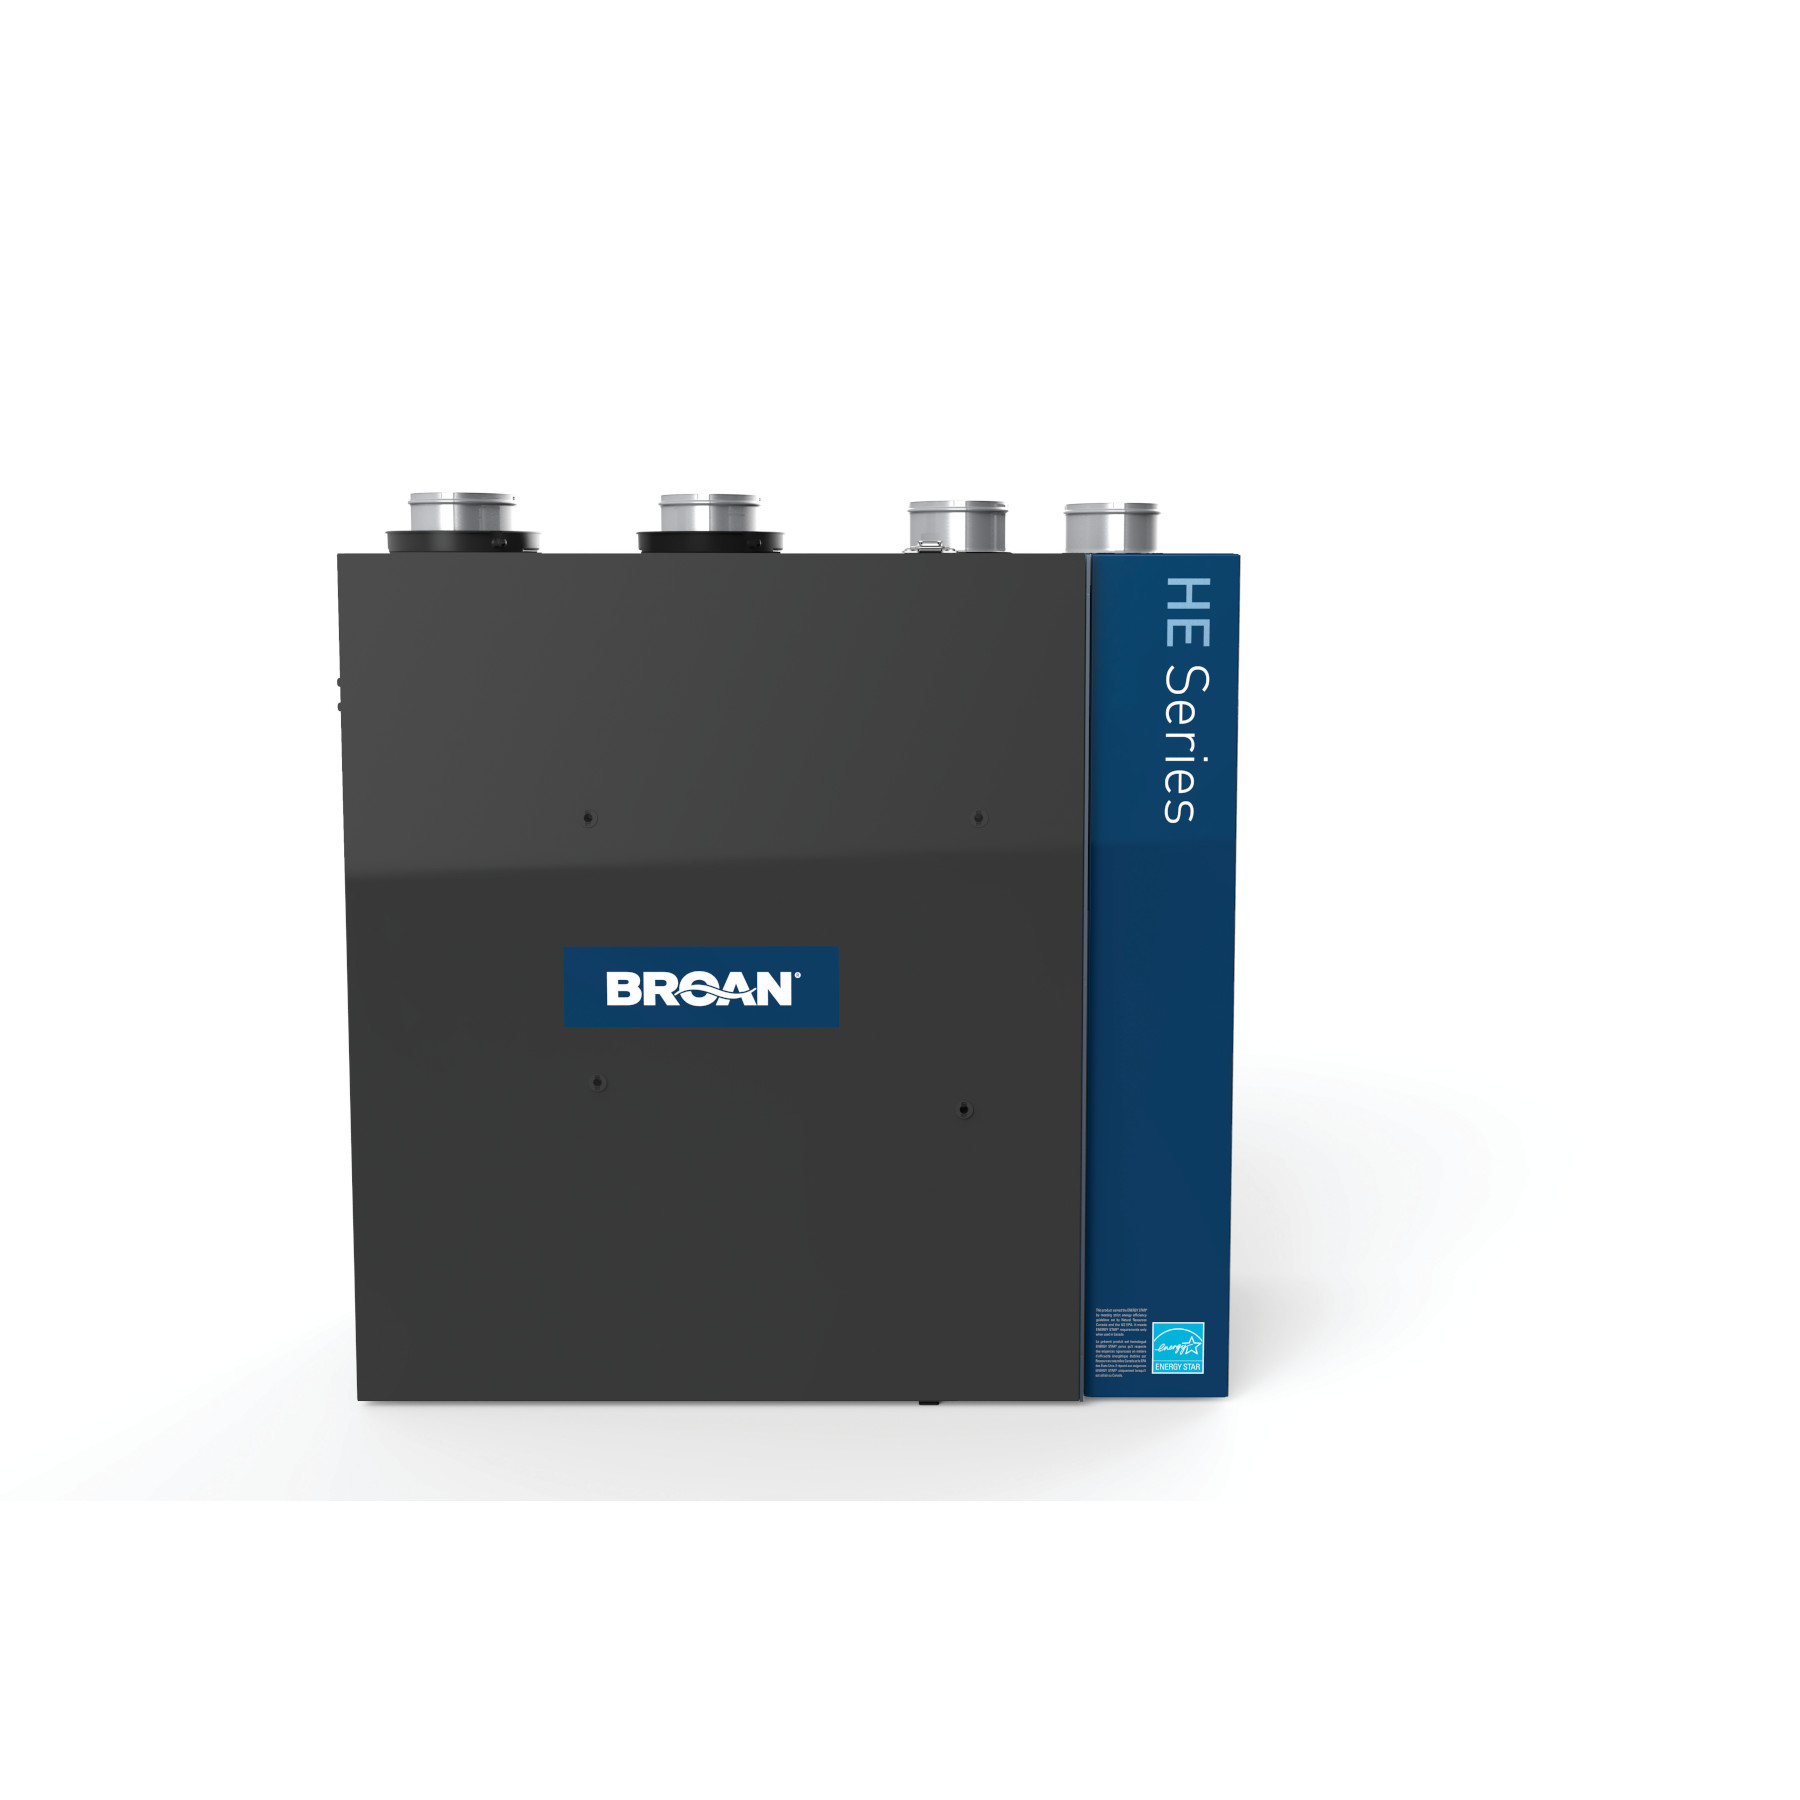 Broan® HE Series Energy Recovery Ventilator, 241 CFM at 0.4 in. w.g.